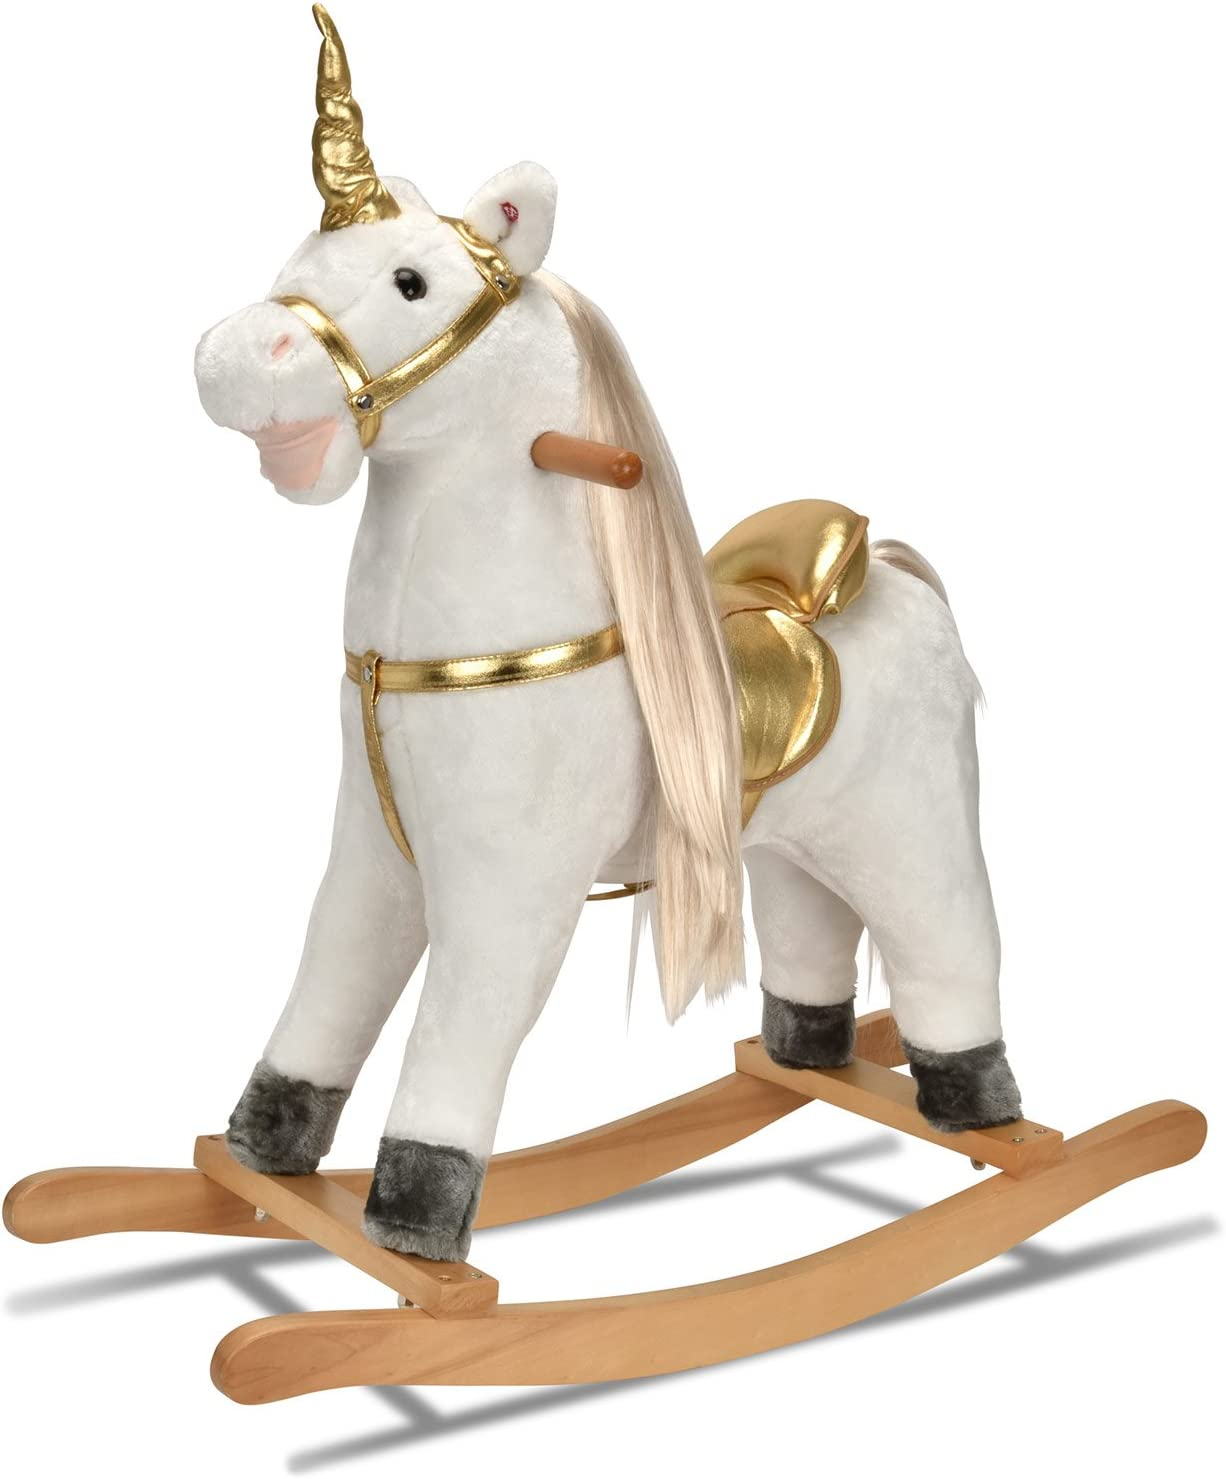 JOON UNICORN ROCKING HORSE, Designed with Soft Materials, Gold Detailing, Blond Hair with Gold Twisted Horn, Perfect for A Magical Adventure for Your Little One, Realistic Galloping Sounds, White-Gold